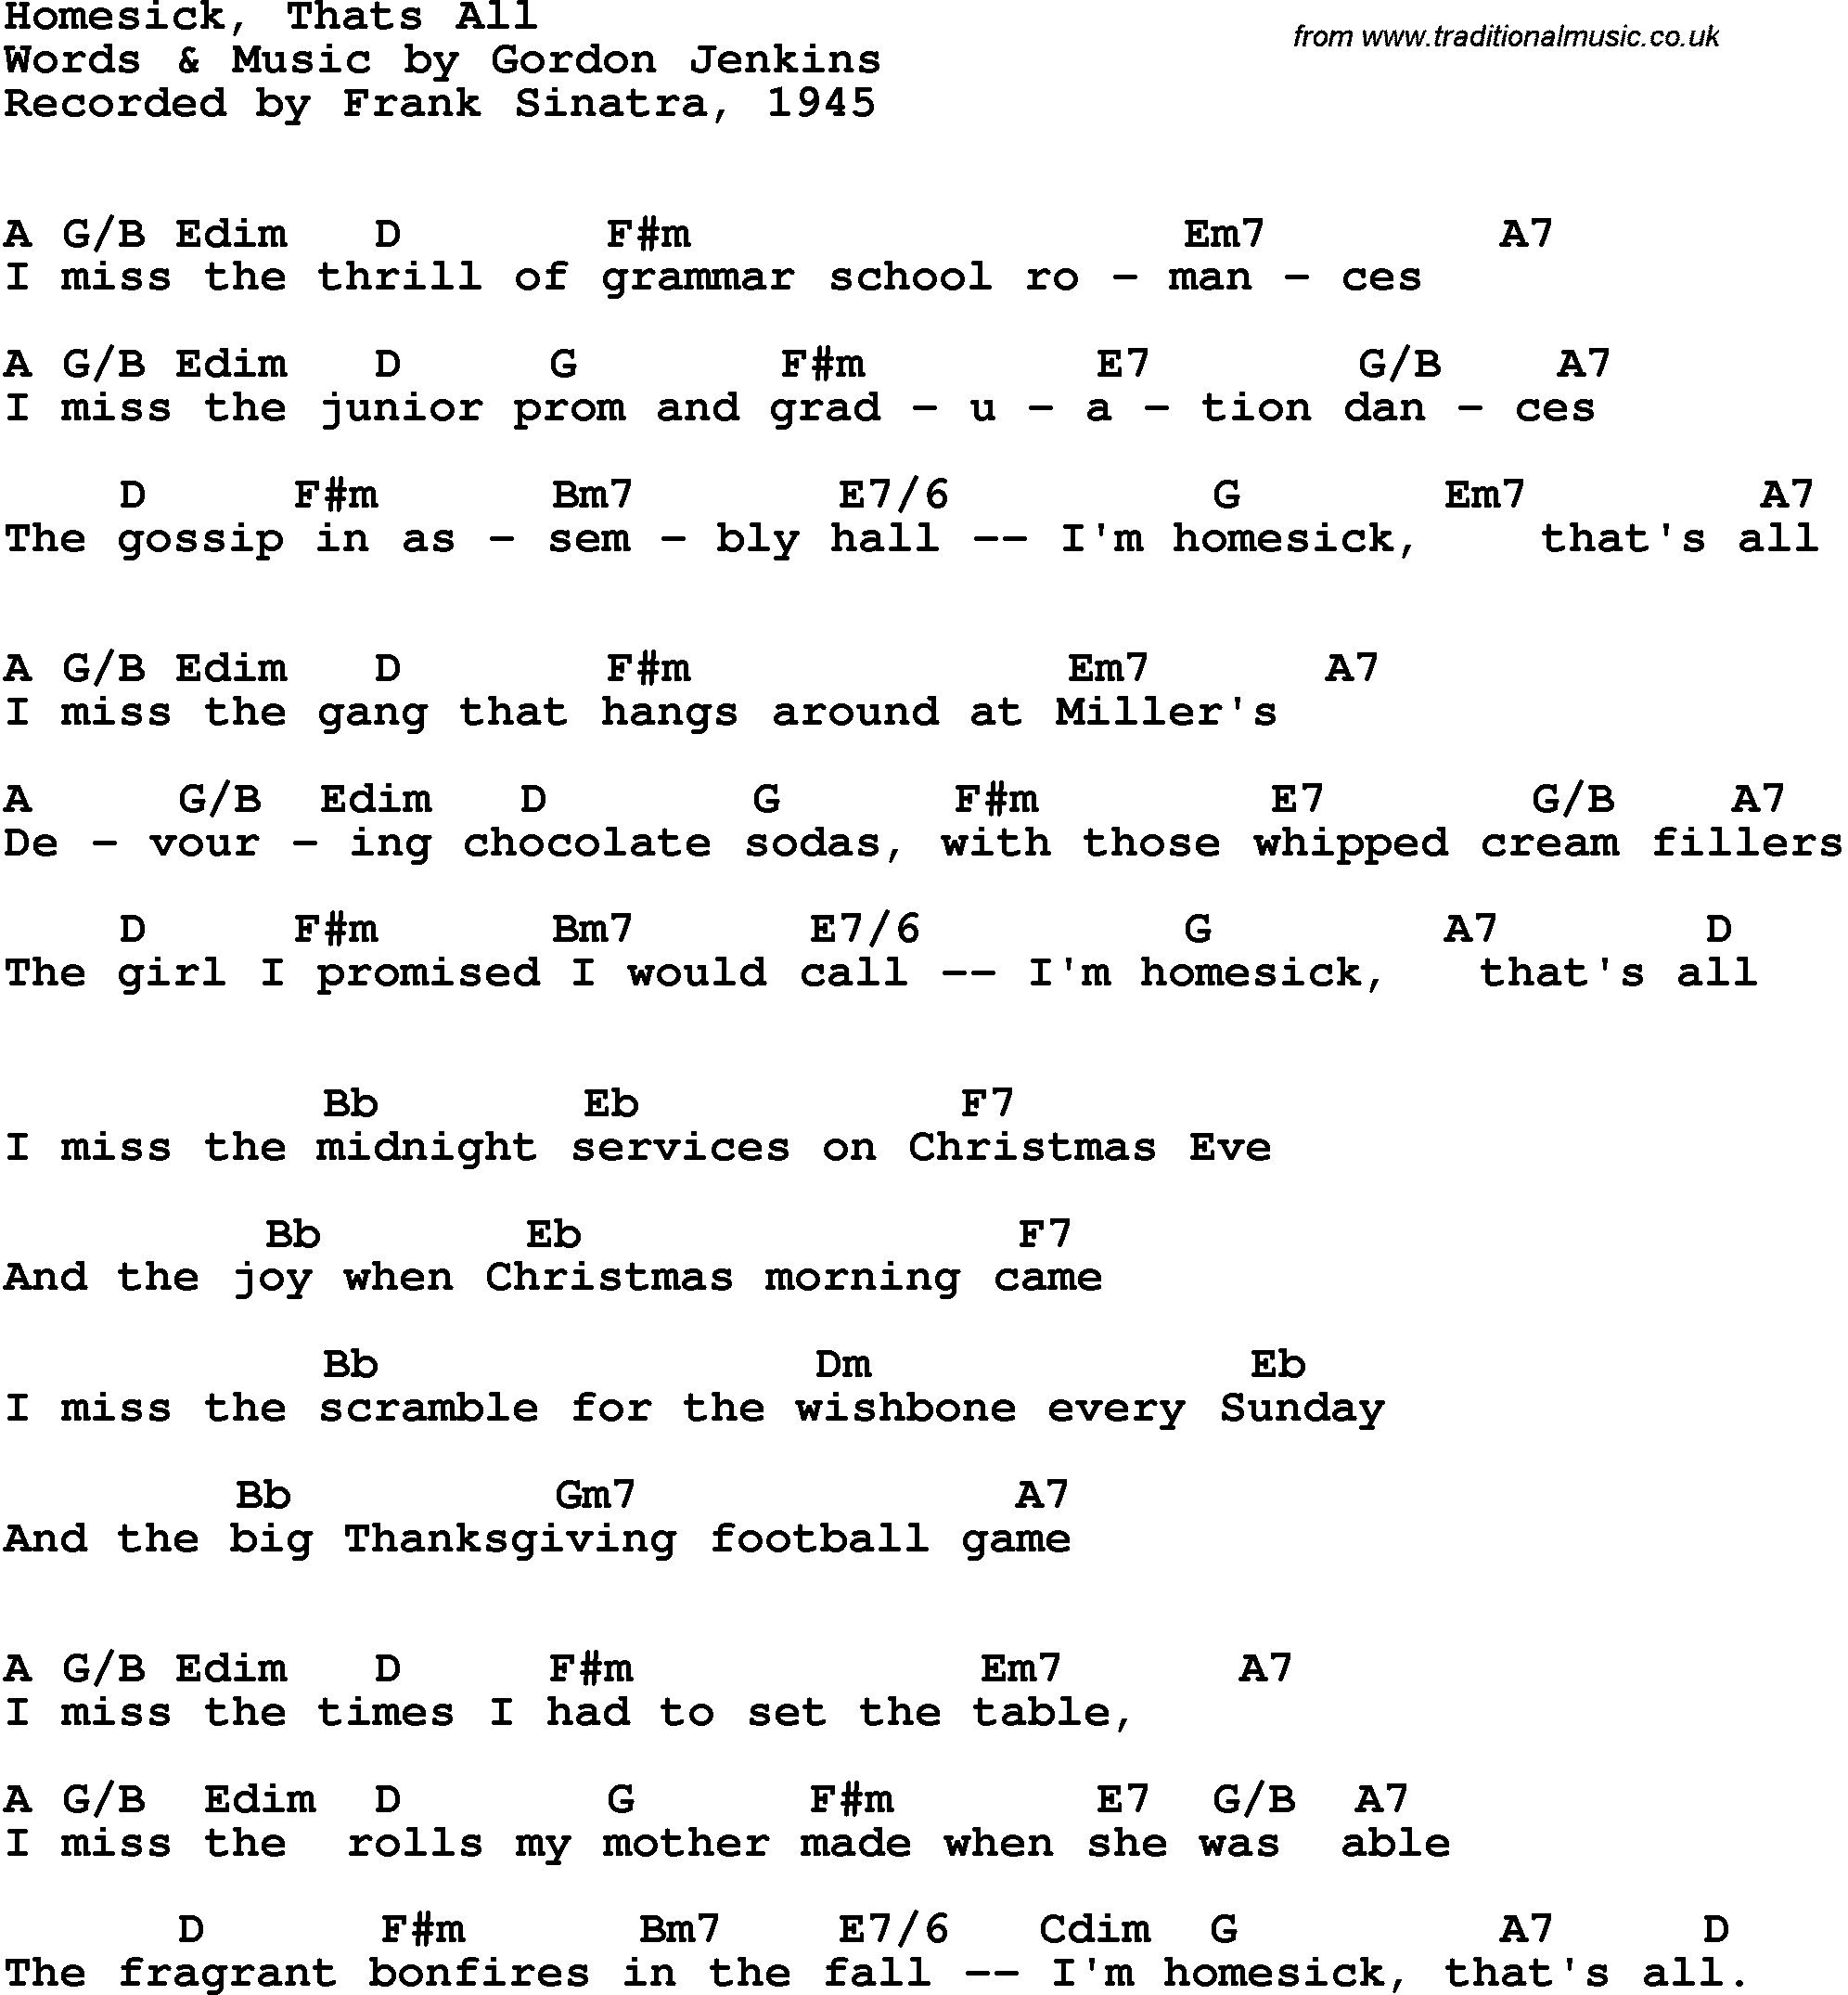 Song Lyrics With Guitar Chords For Homesick Thats All Frank